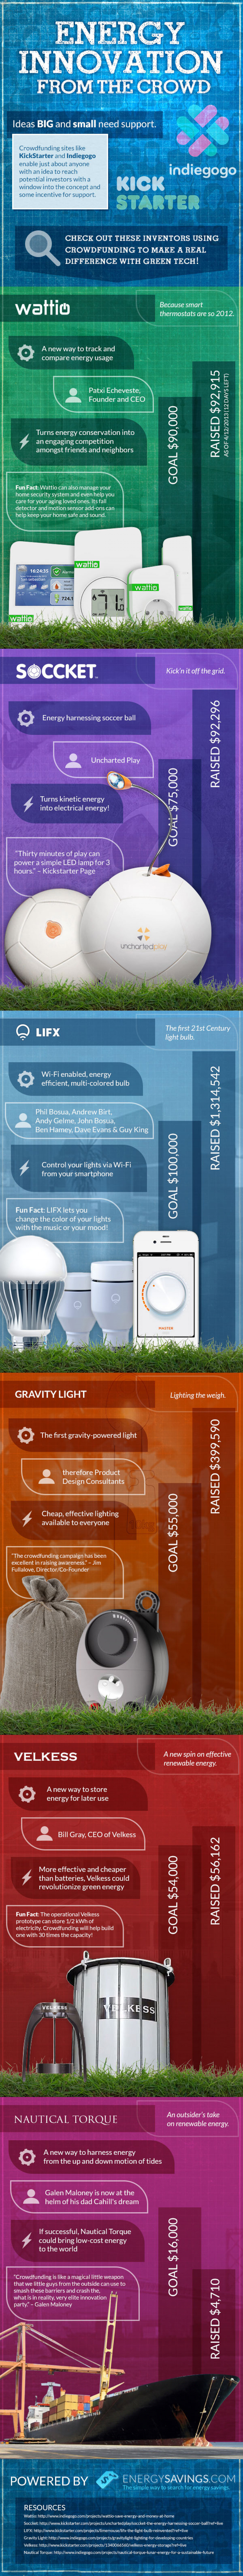 Green Energy Innovation: From the Crowd Infographic